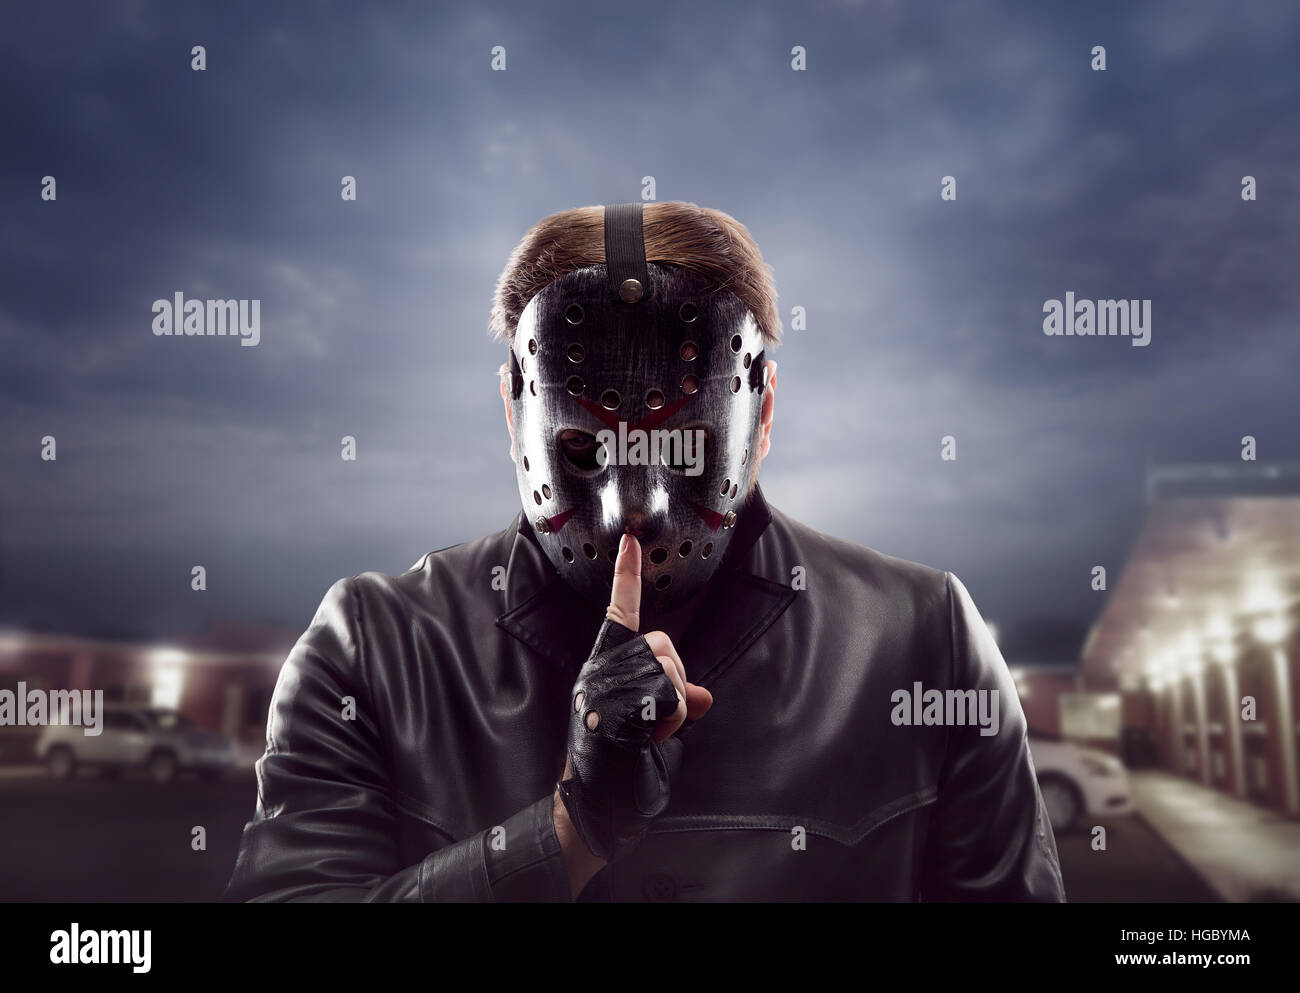 Bloody maniac in hockey mask show do not talk sign - Stock Image